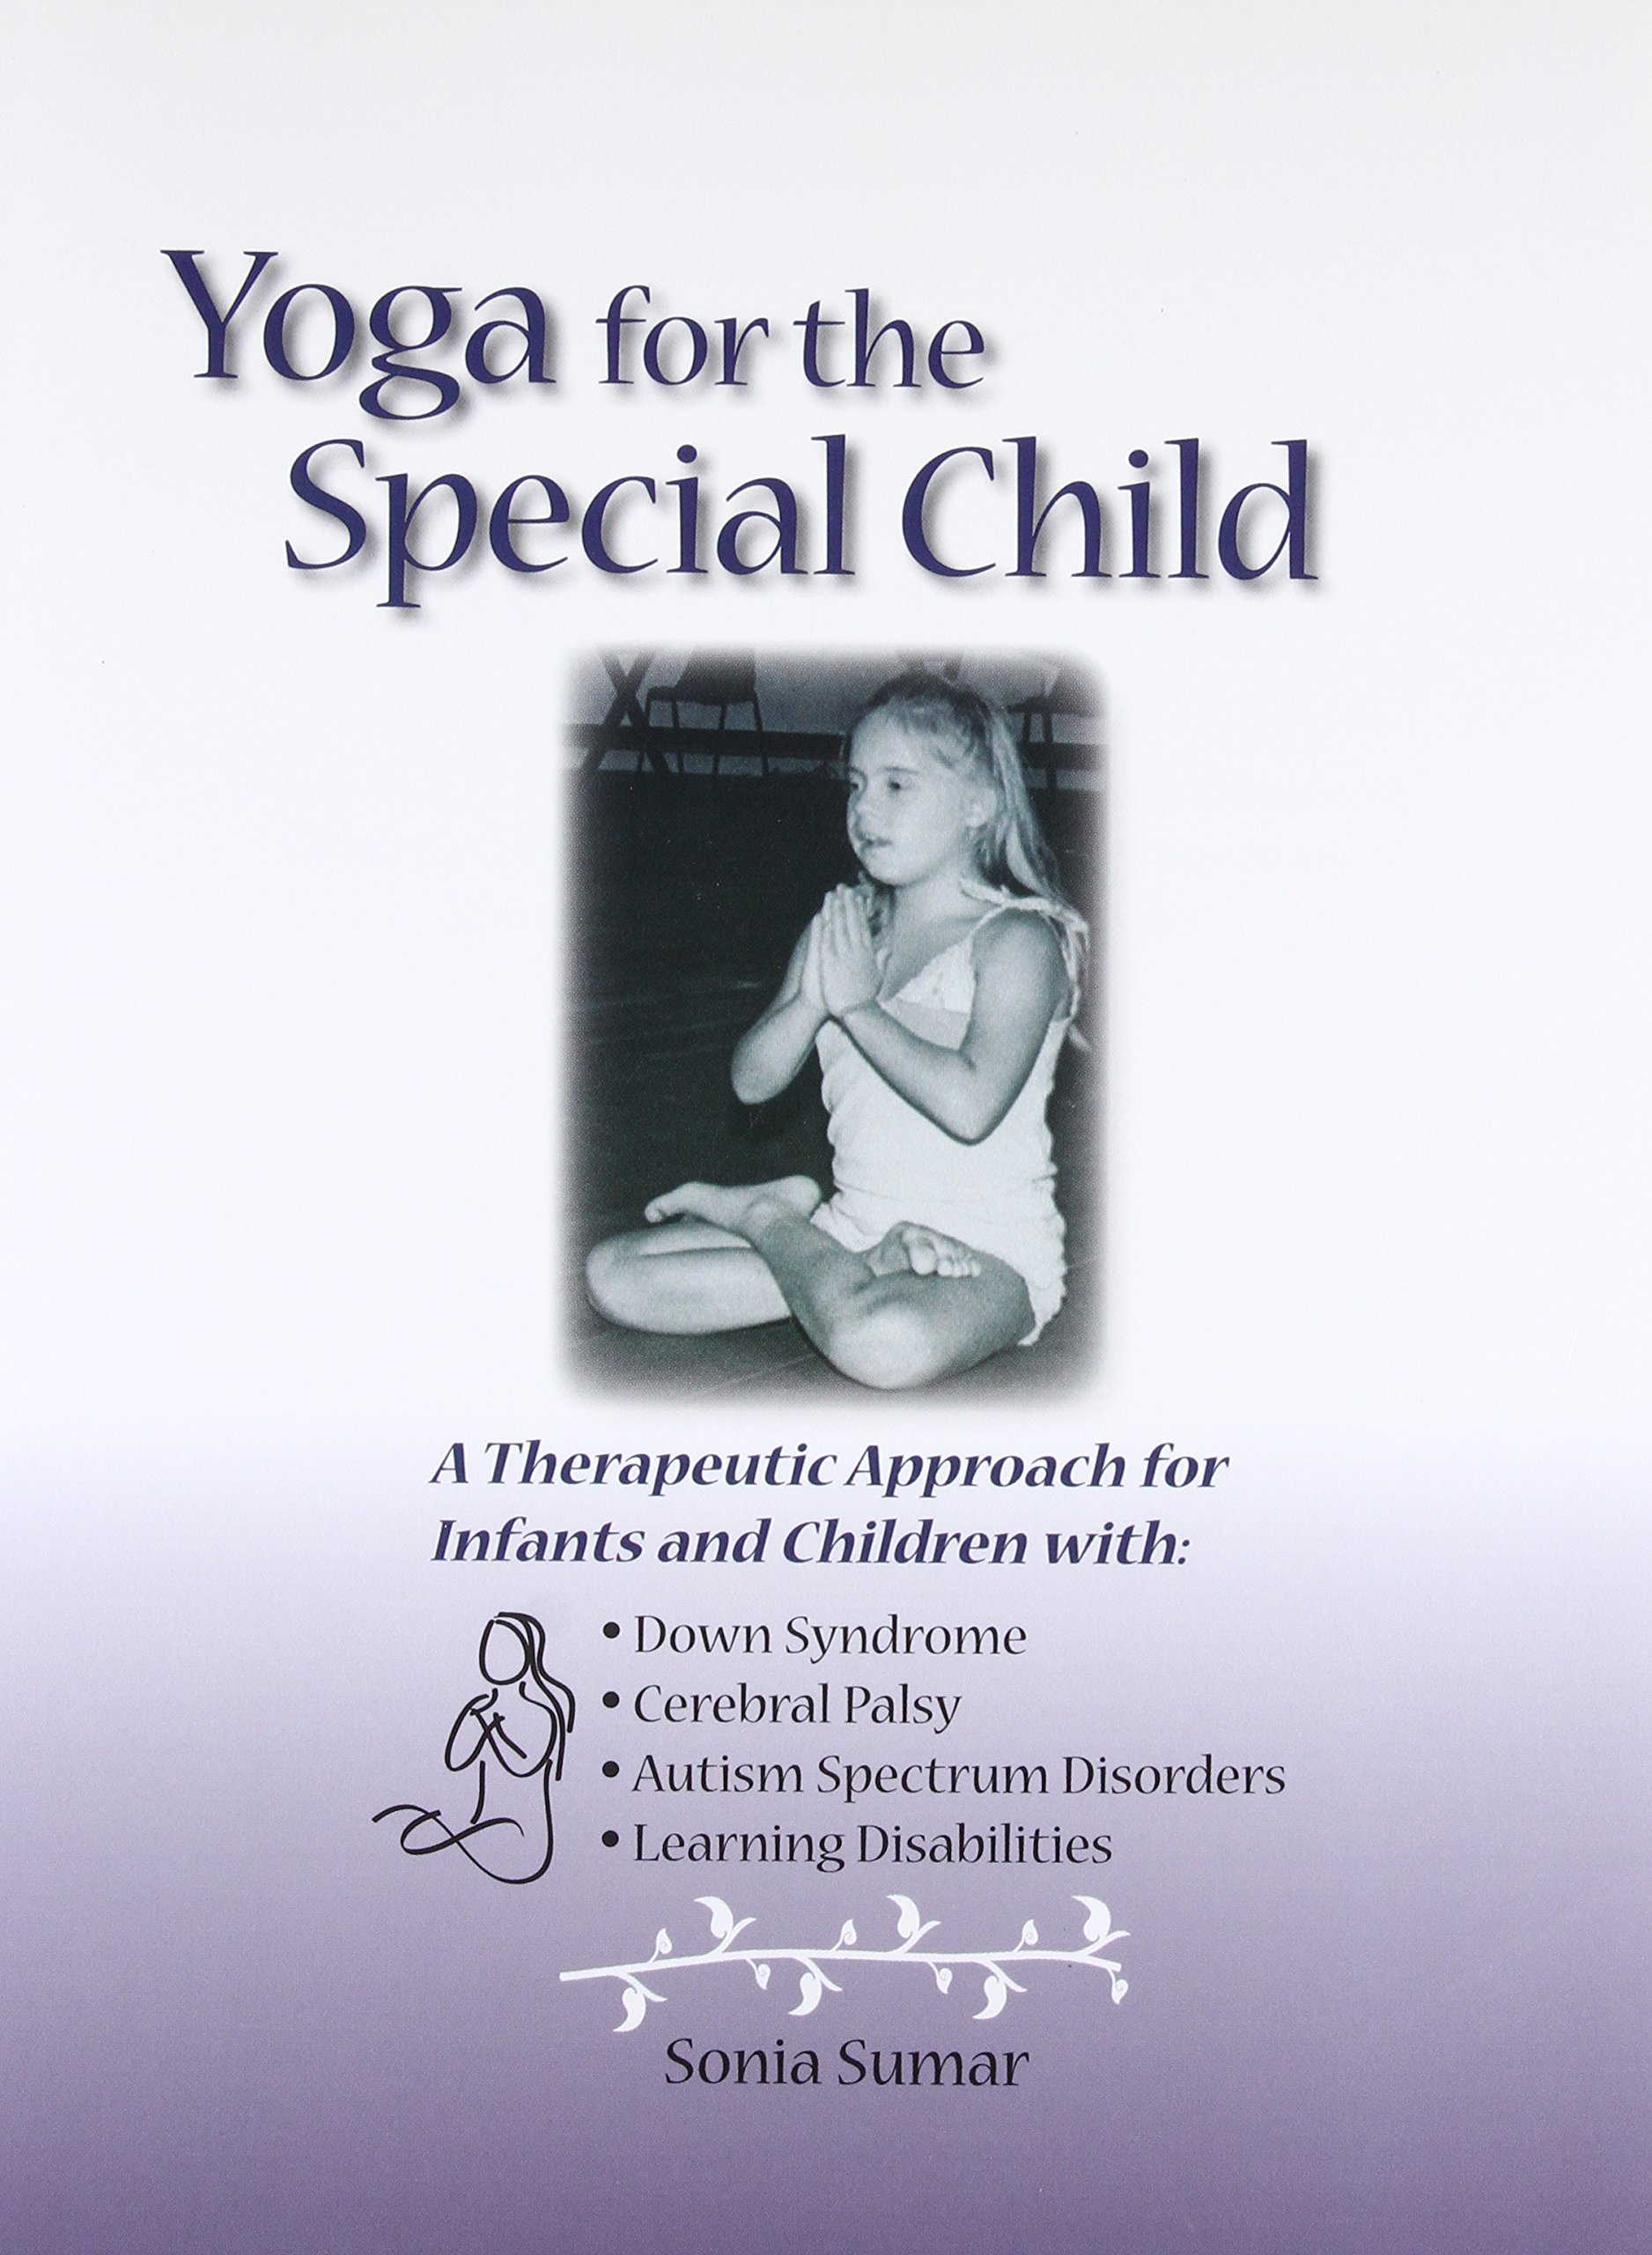 Yoga for the Special Child A Therapeutic Approach for Infants and